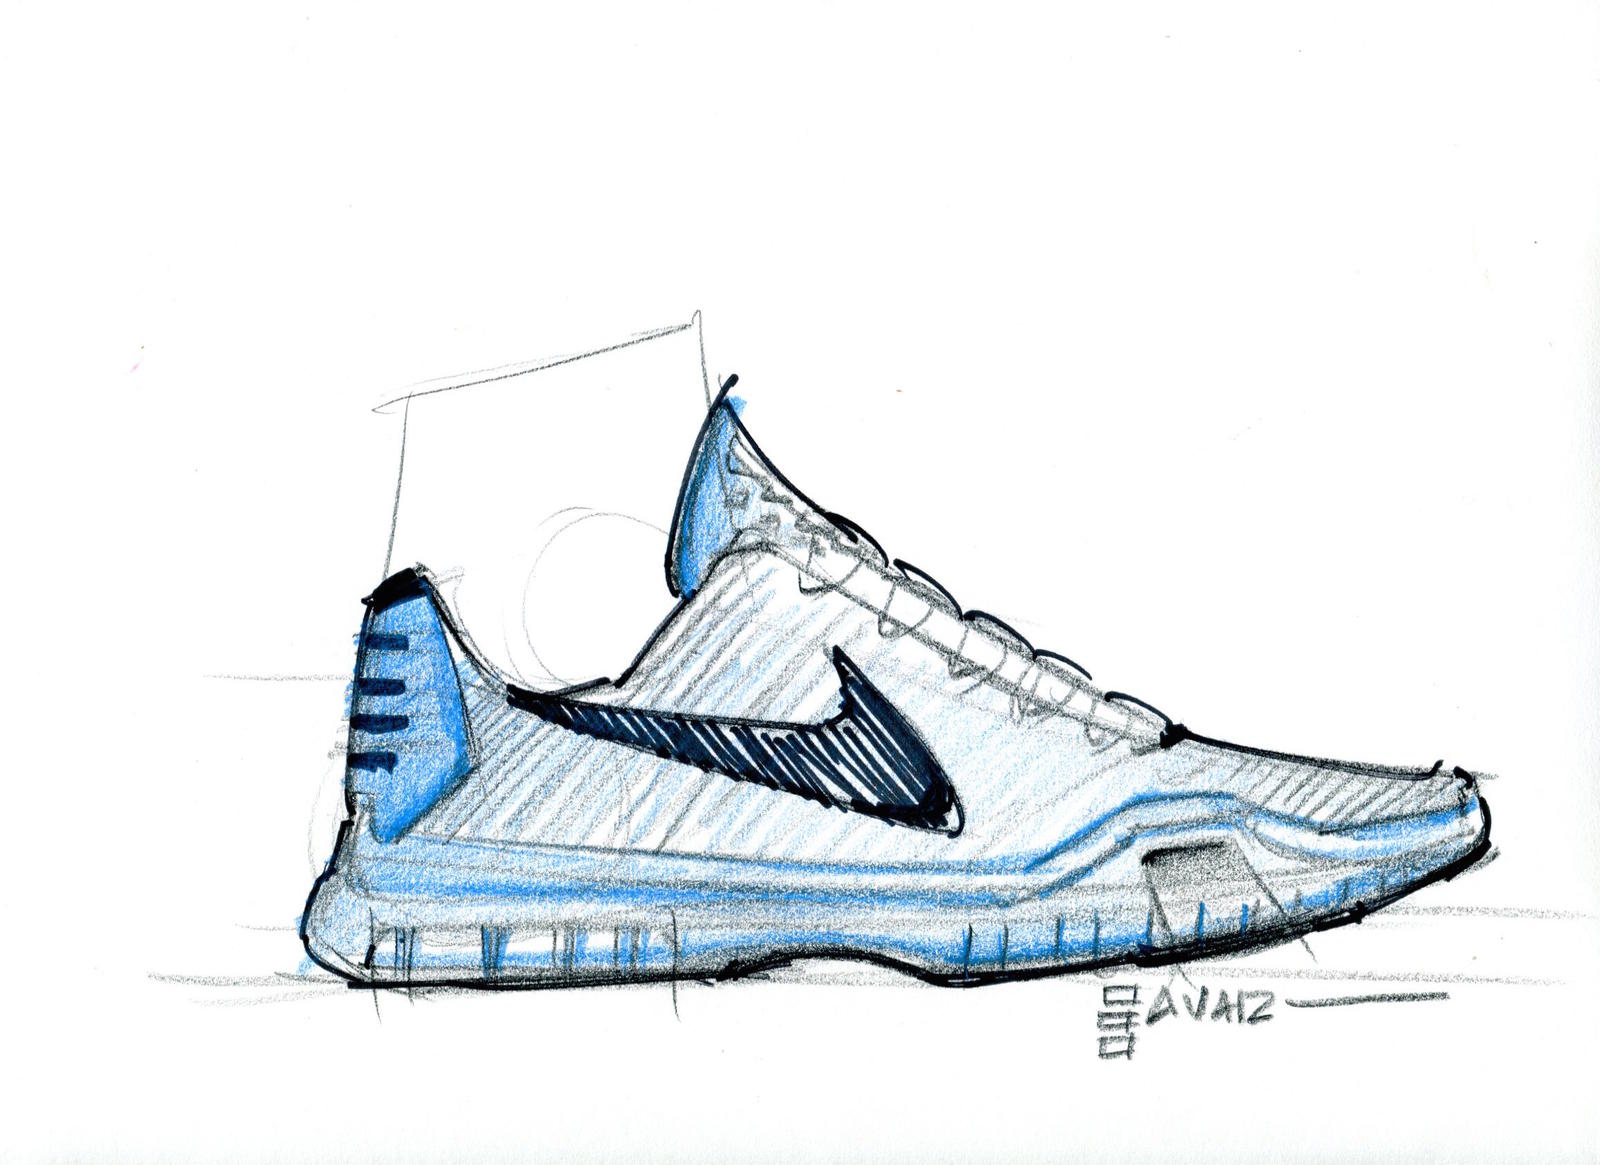 Designer Eric Avar's sketch of the KOBE X.